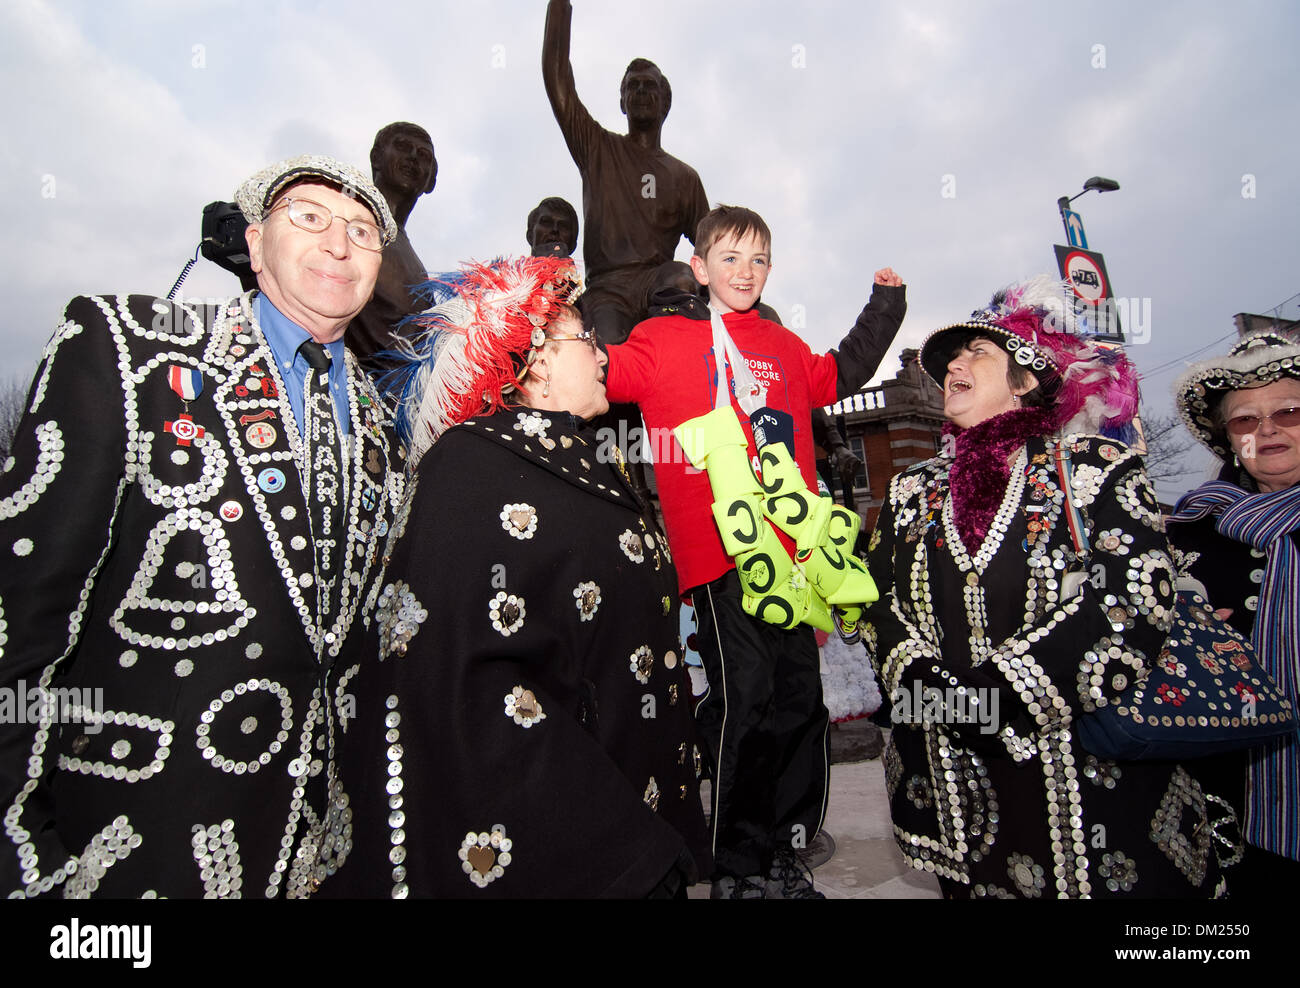 pearly kings and queens join Jonjo Heuerman beside the bobby Moore statue after completing a six day sponsored walk. Route 66 - Stock Image